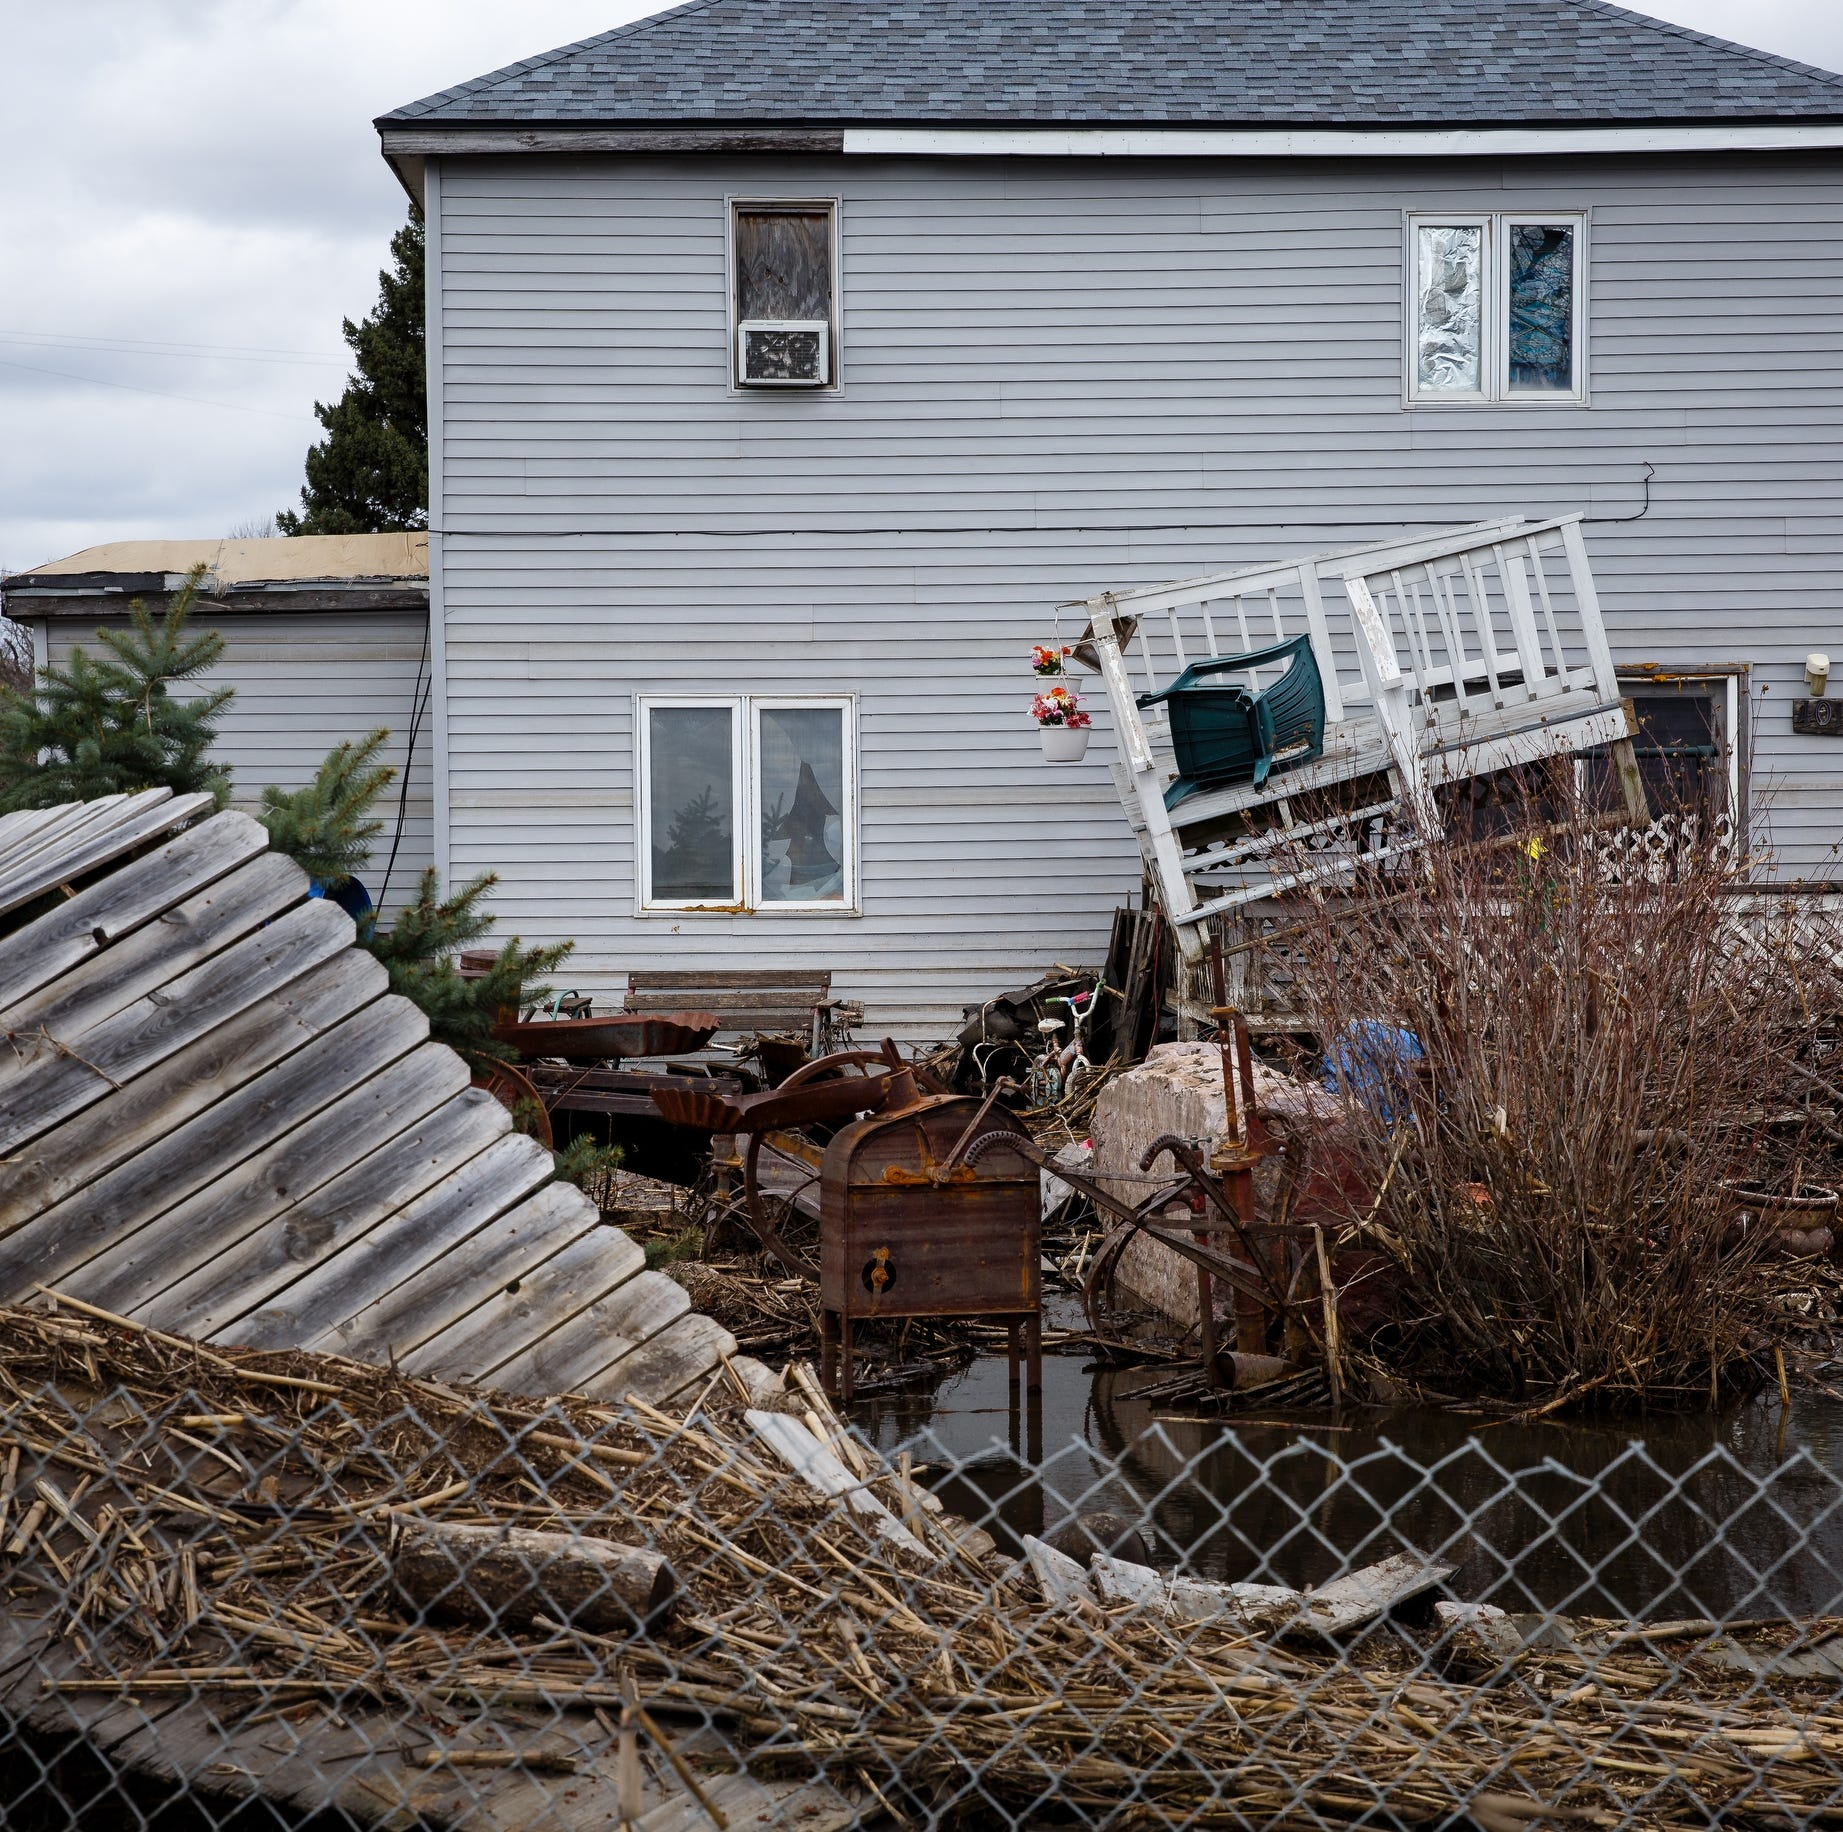 Decks, fences and cornstalks litter the yard of a home leftover from the floodwaters on Friday, April 12, 2019, in Pacific Junction.